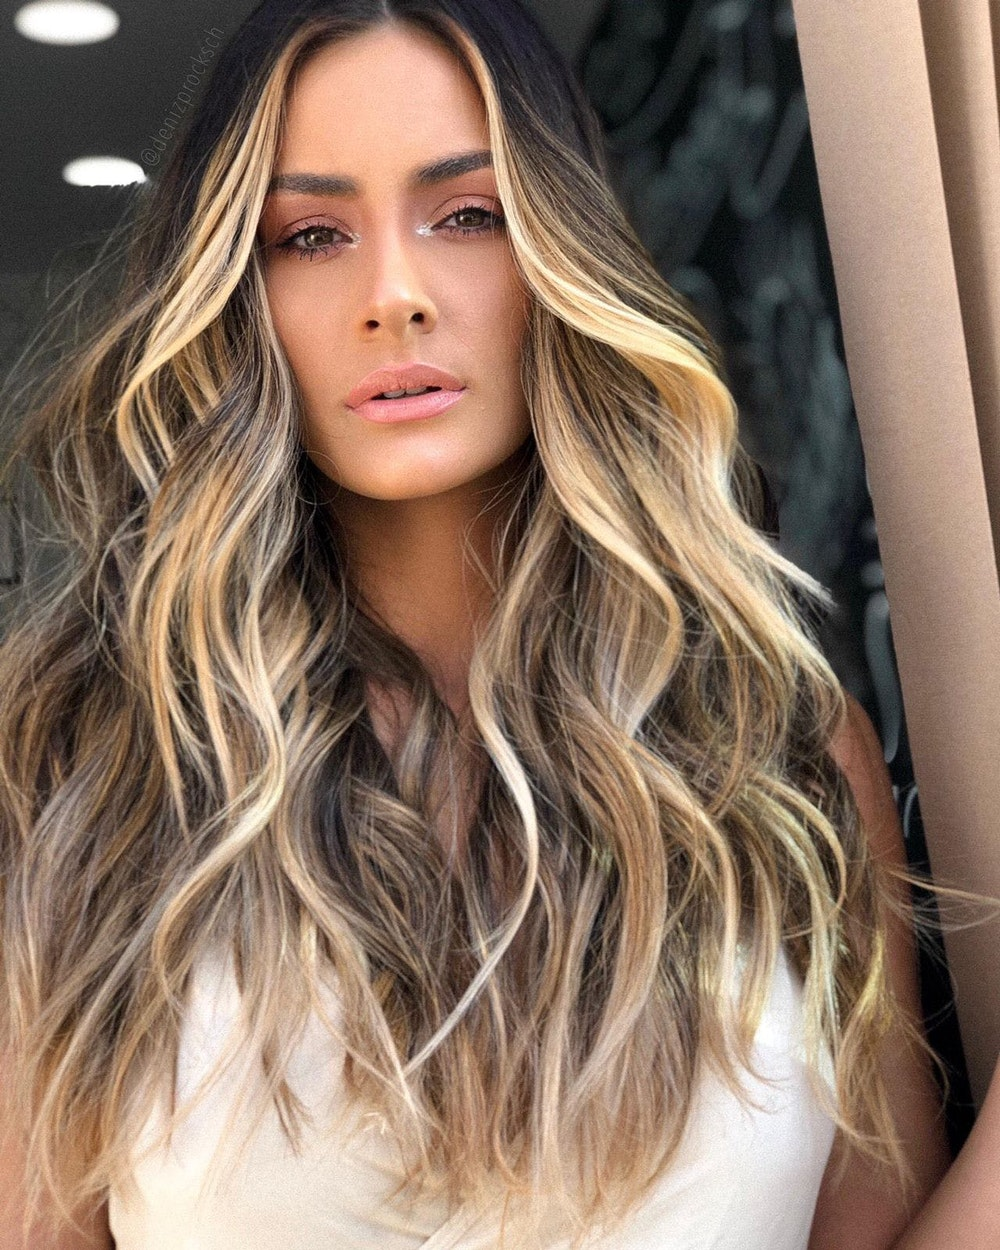 Golden Nude: The Hair Trend of The Fall and Winter Season - Hair Color Trend 2021